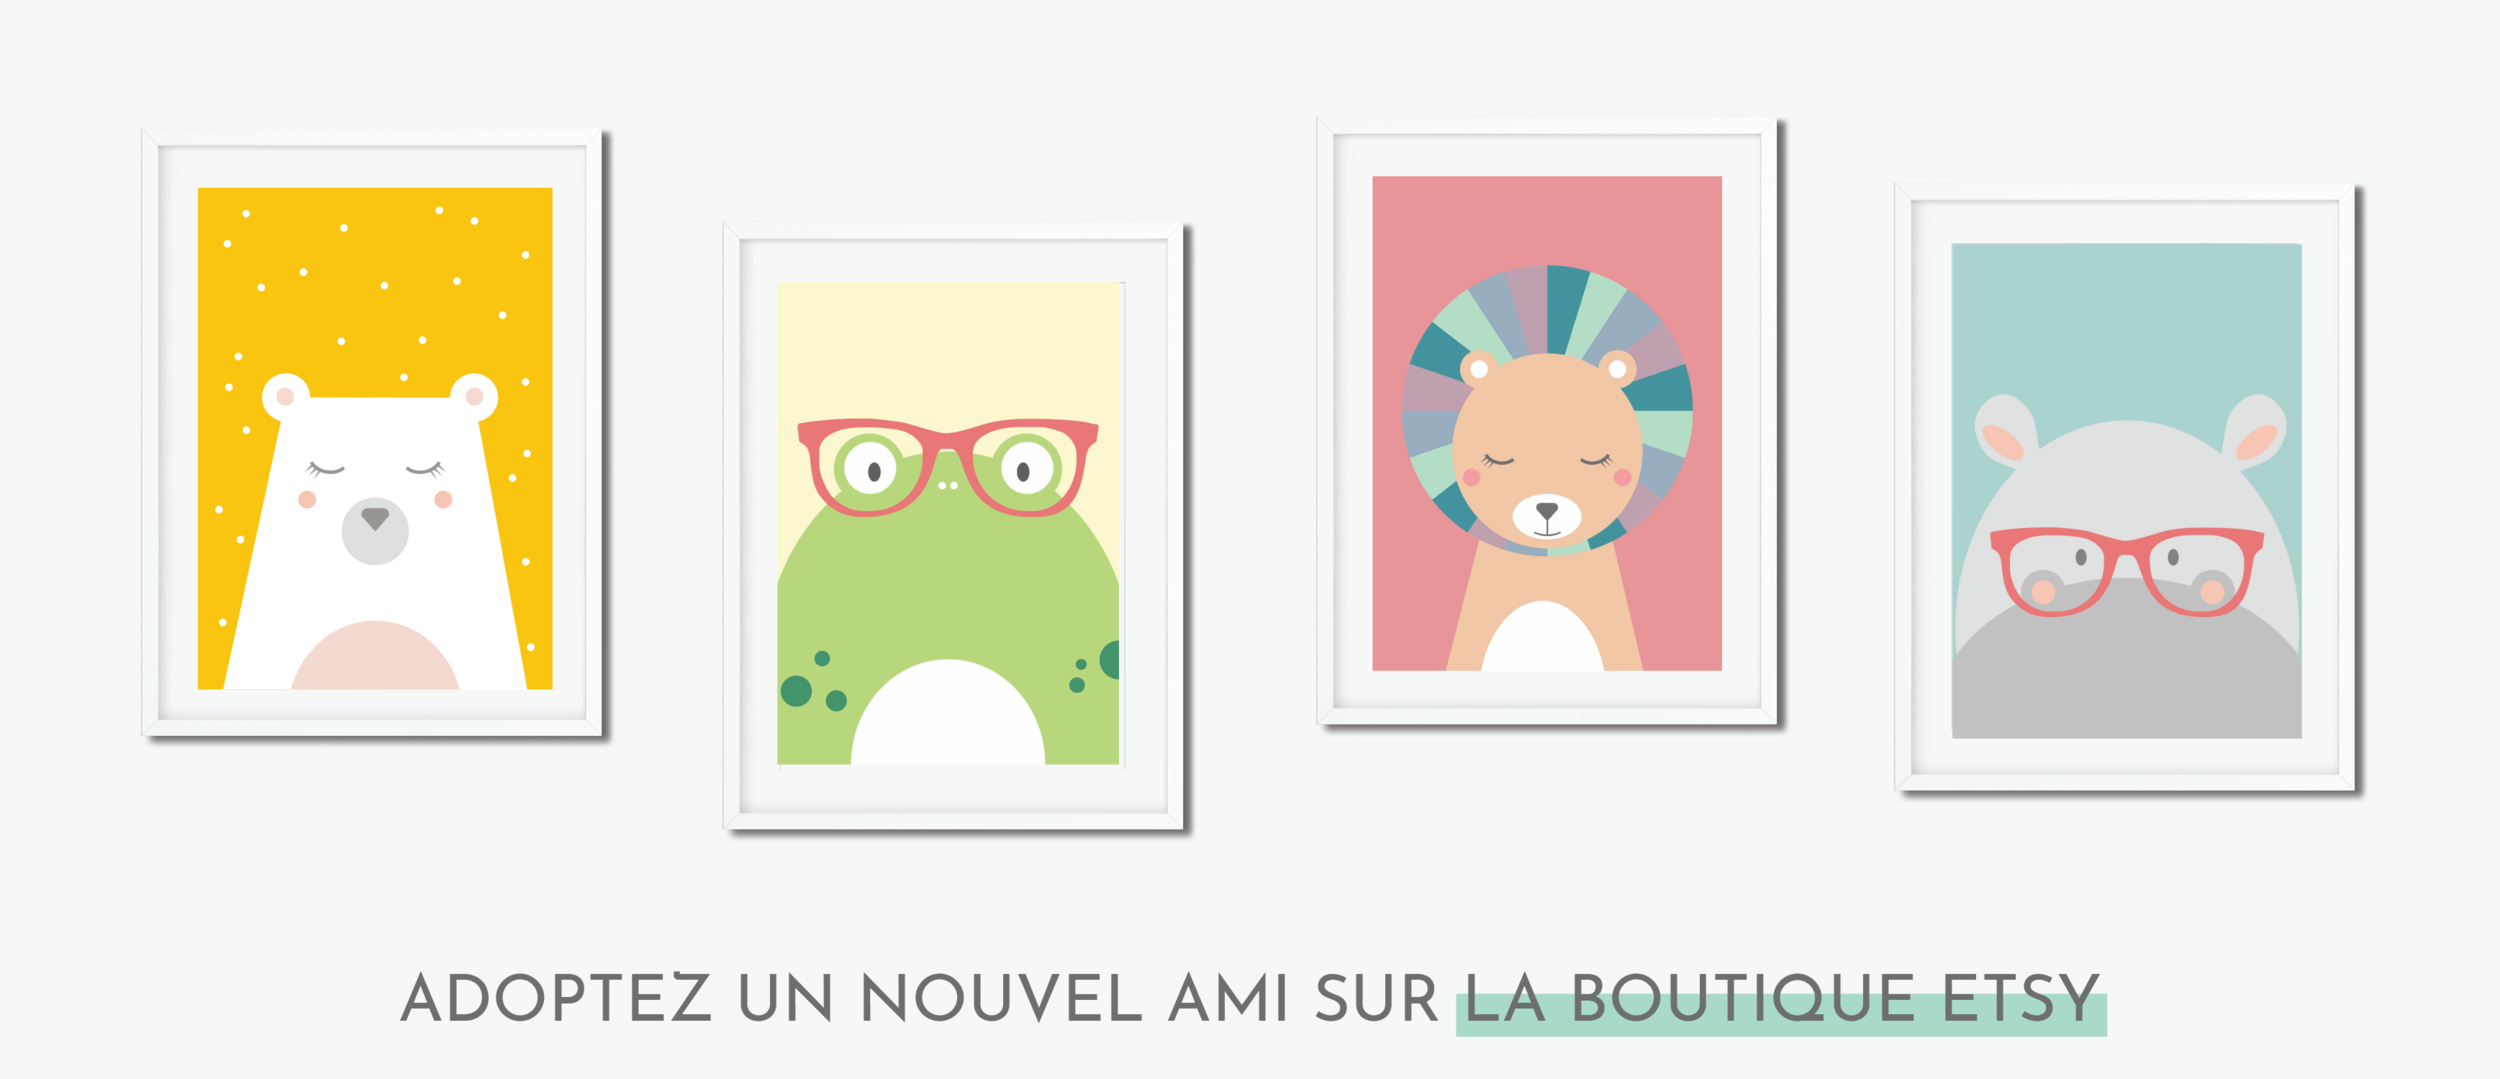 illustrations affiche animaux enfants boutique etsy hello godiche charline molaFichier 14.png